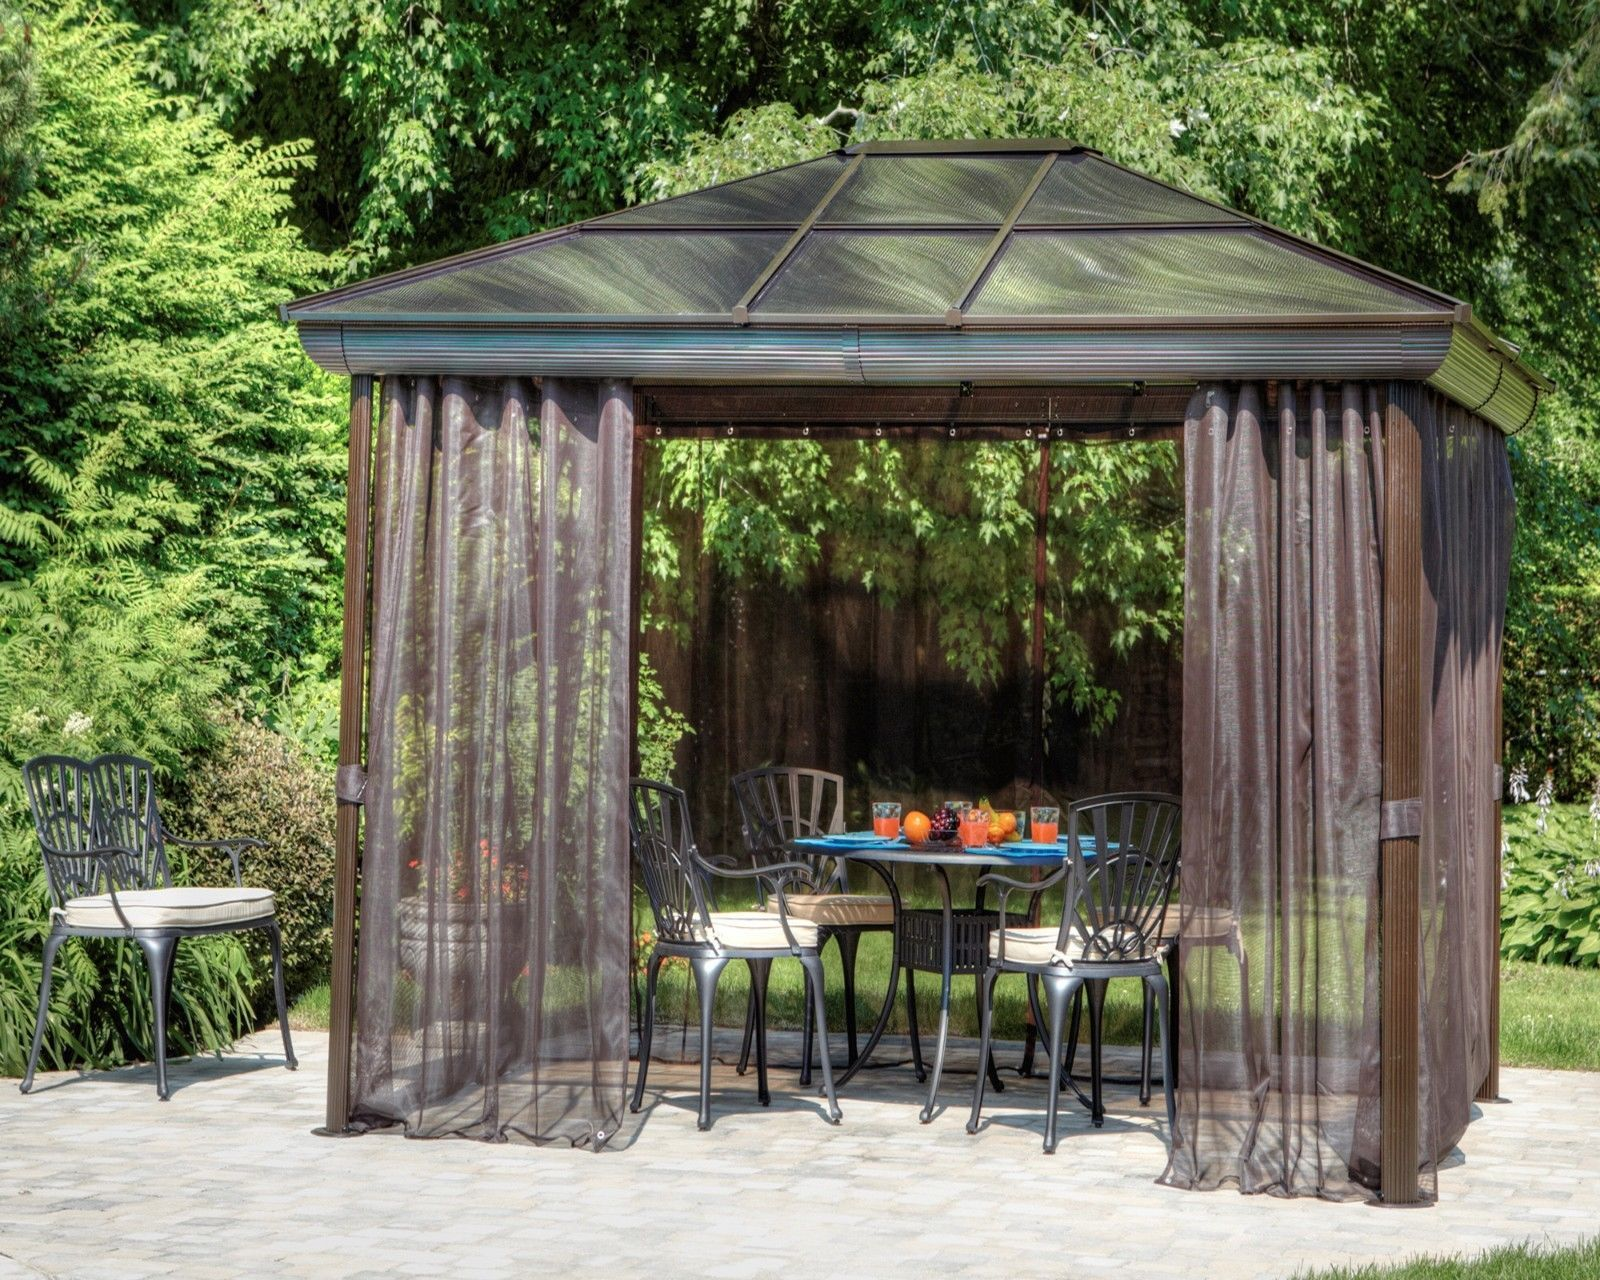 Outdoor Hardtop Gazebo Garden Metal Roof Canopies And Gazebos 10x14 For  Patio | EBay